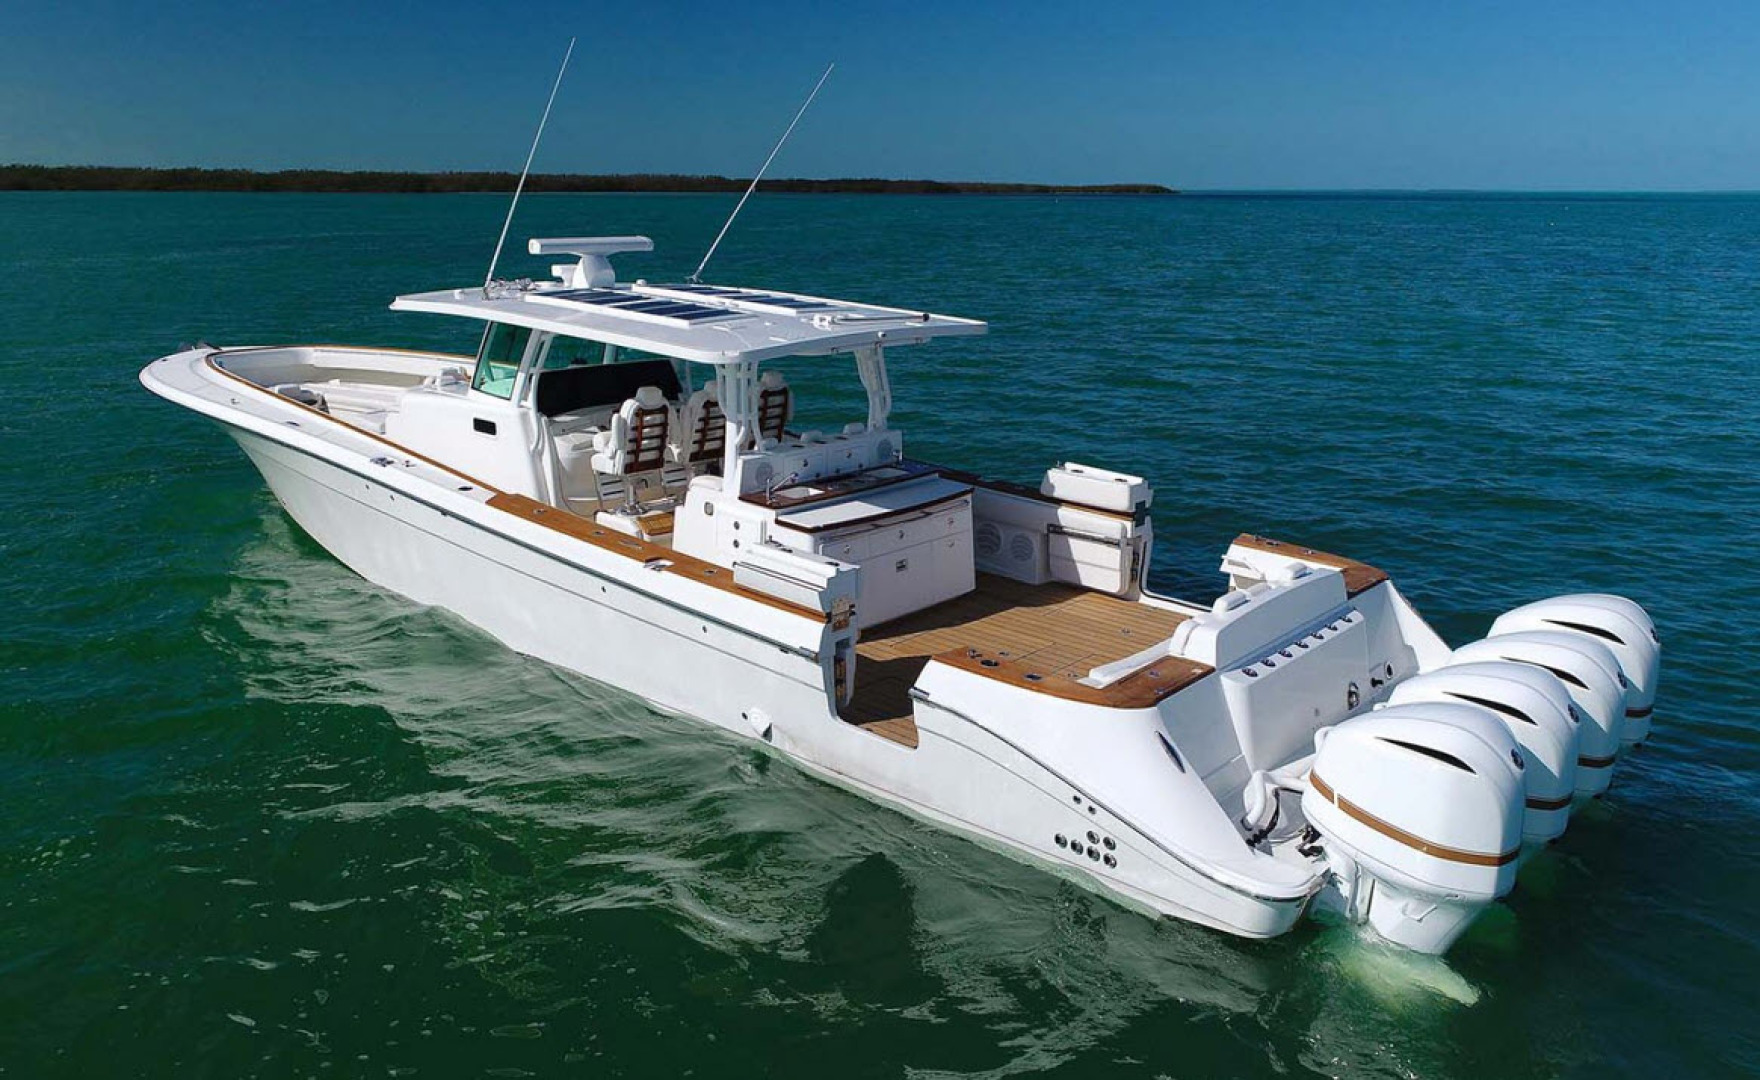 HCB 53 Suenos yacht for sale in montauk ny